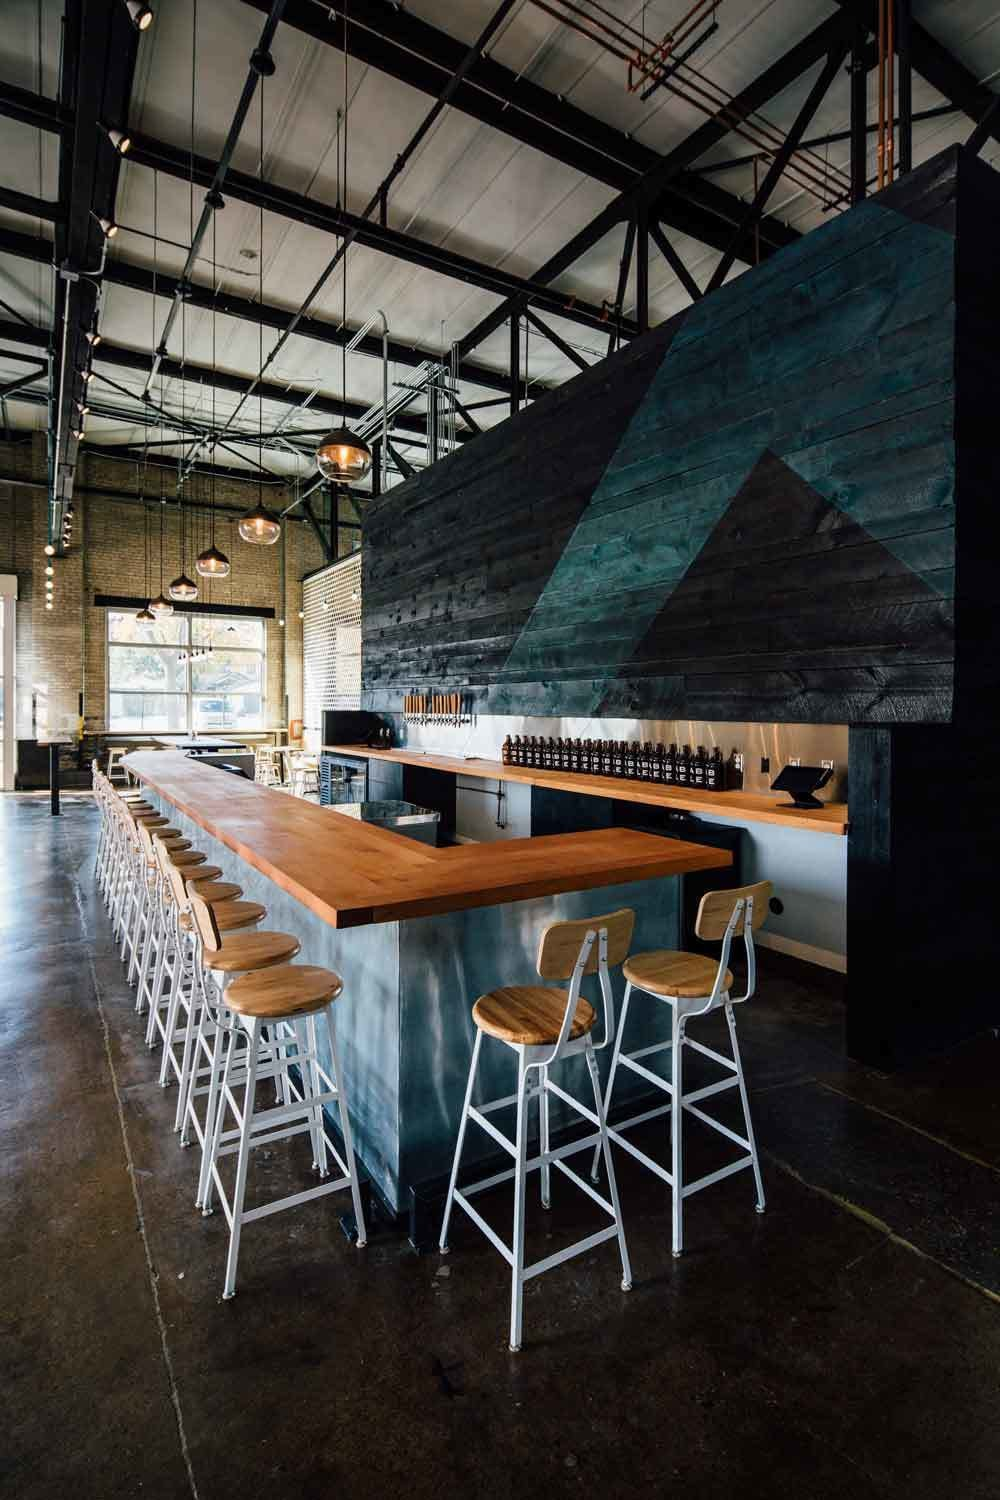 An indoor biergarten with an industrial edge, this is the perfect combination of the traditional beer hall and the modern meeting place.